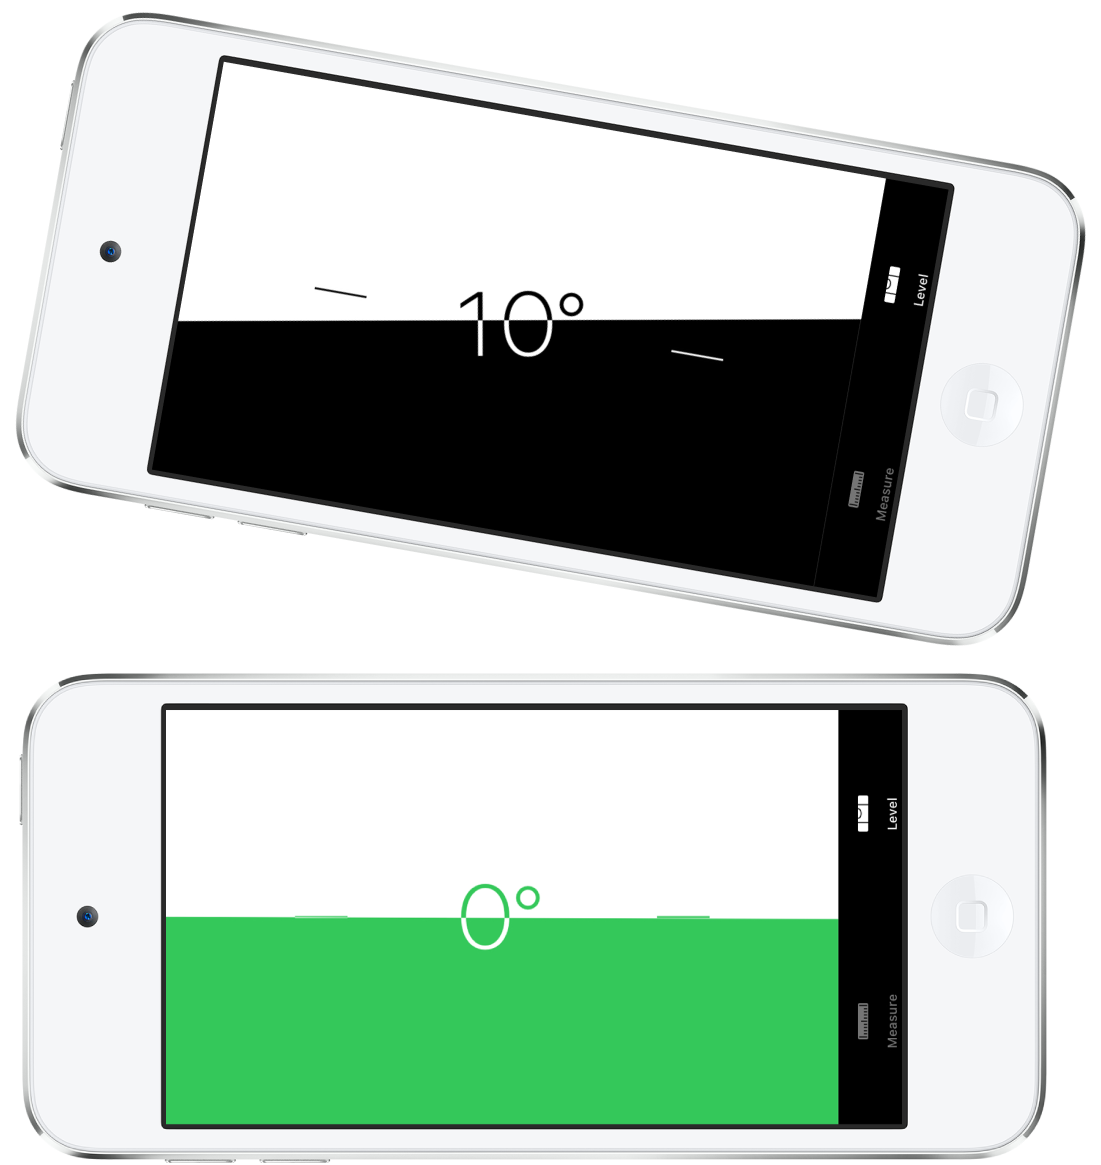 The level screen. On the top, iPod touch is tilted at an angle of ten degrees; on the bottom, iPod touch is level.